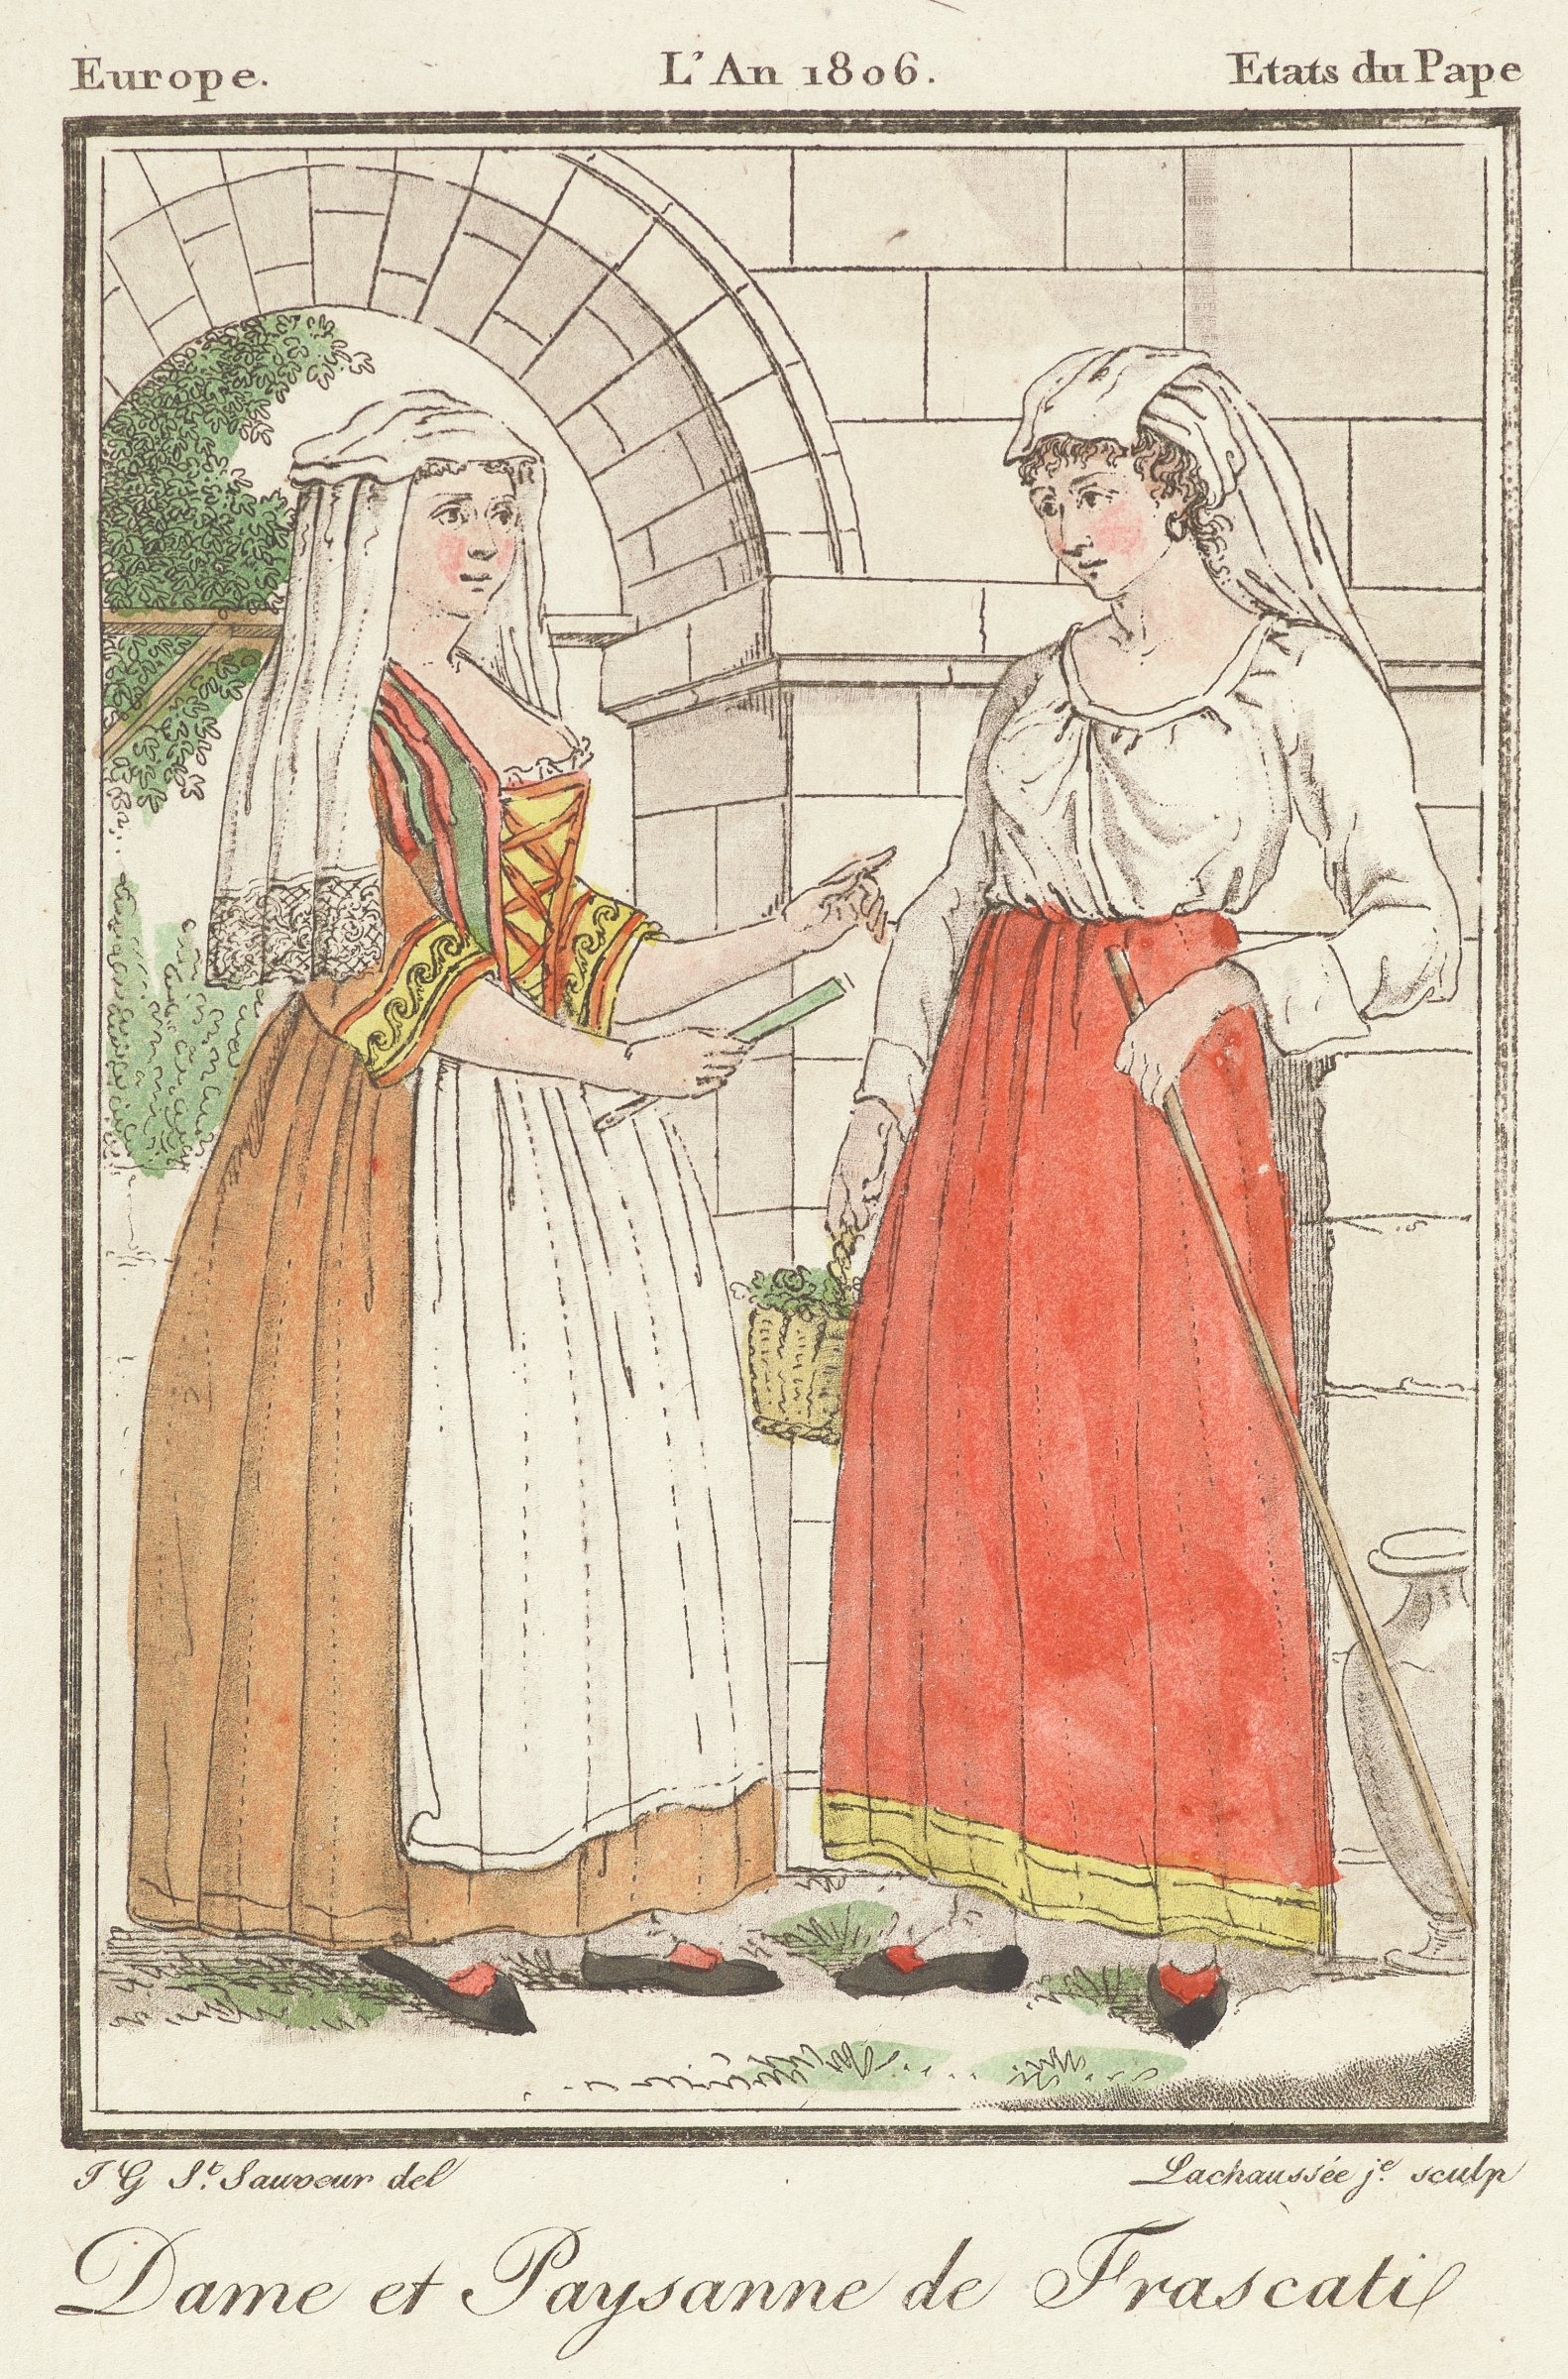 Two women stand infront of a stone arched structure. The woman on the left wears an elagent dress with a white headress that falls around her shoulders. The woman on the right wears a simple shirt and skirt with a white headress that falls down her back.